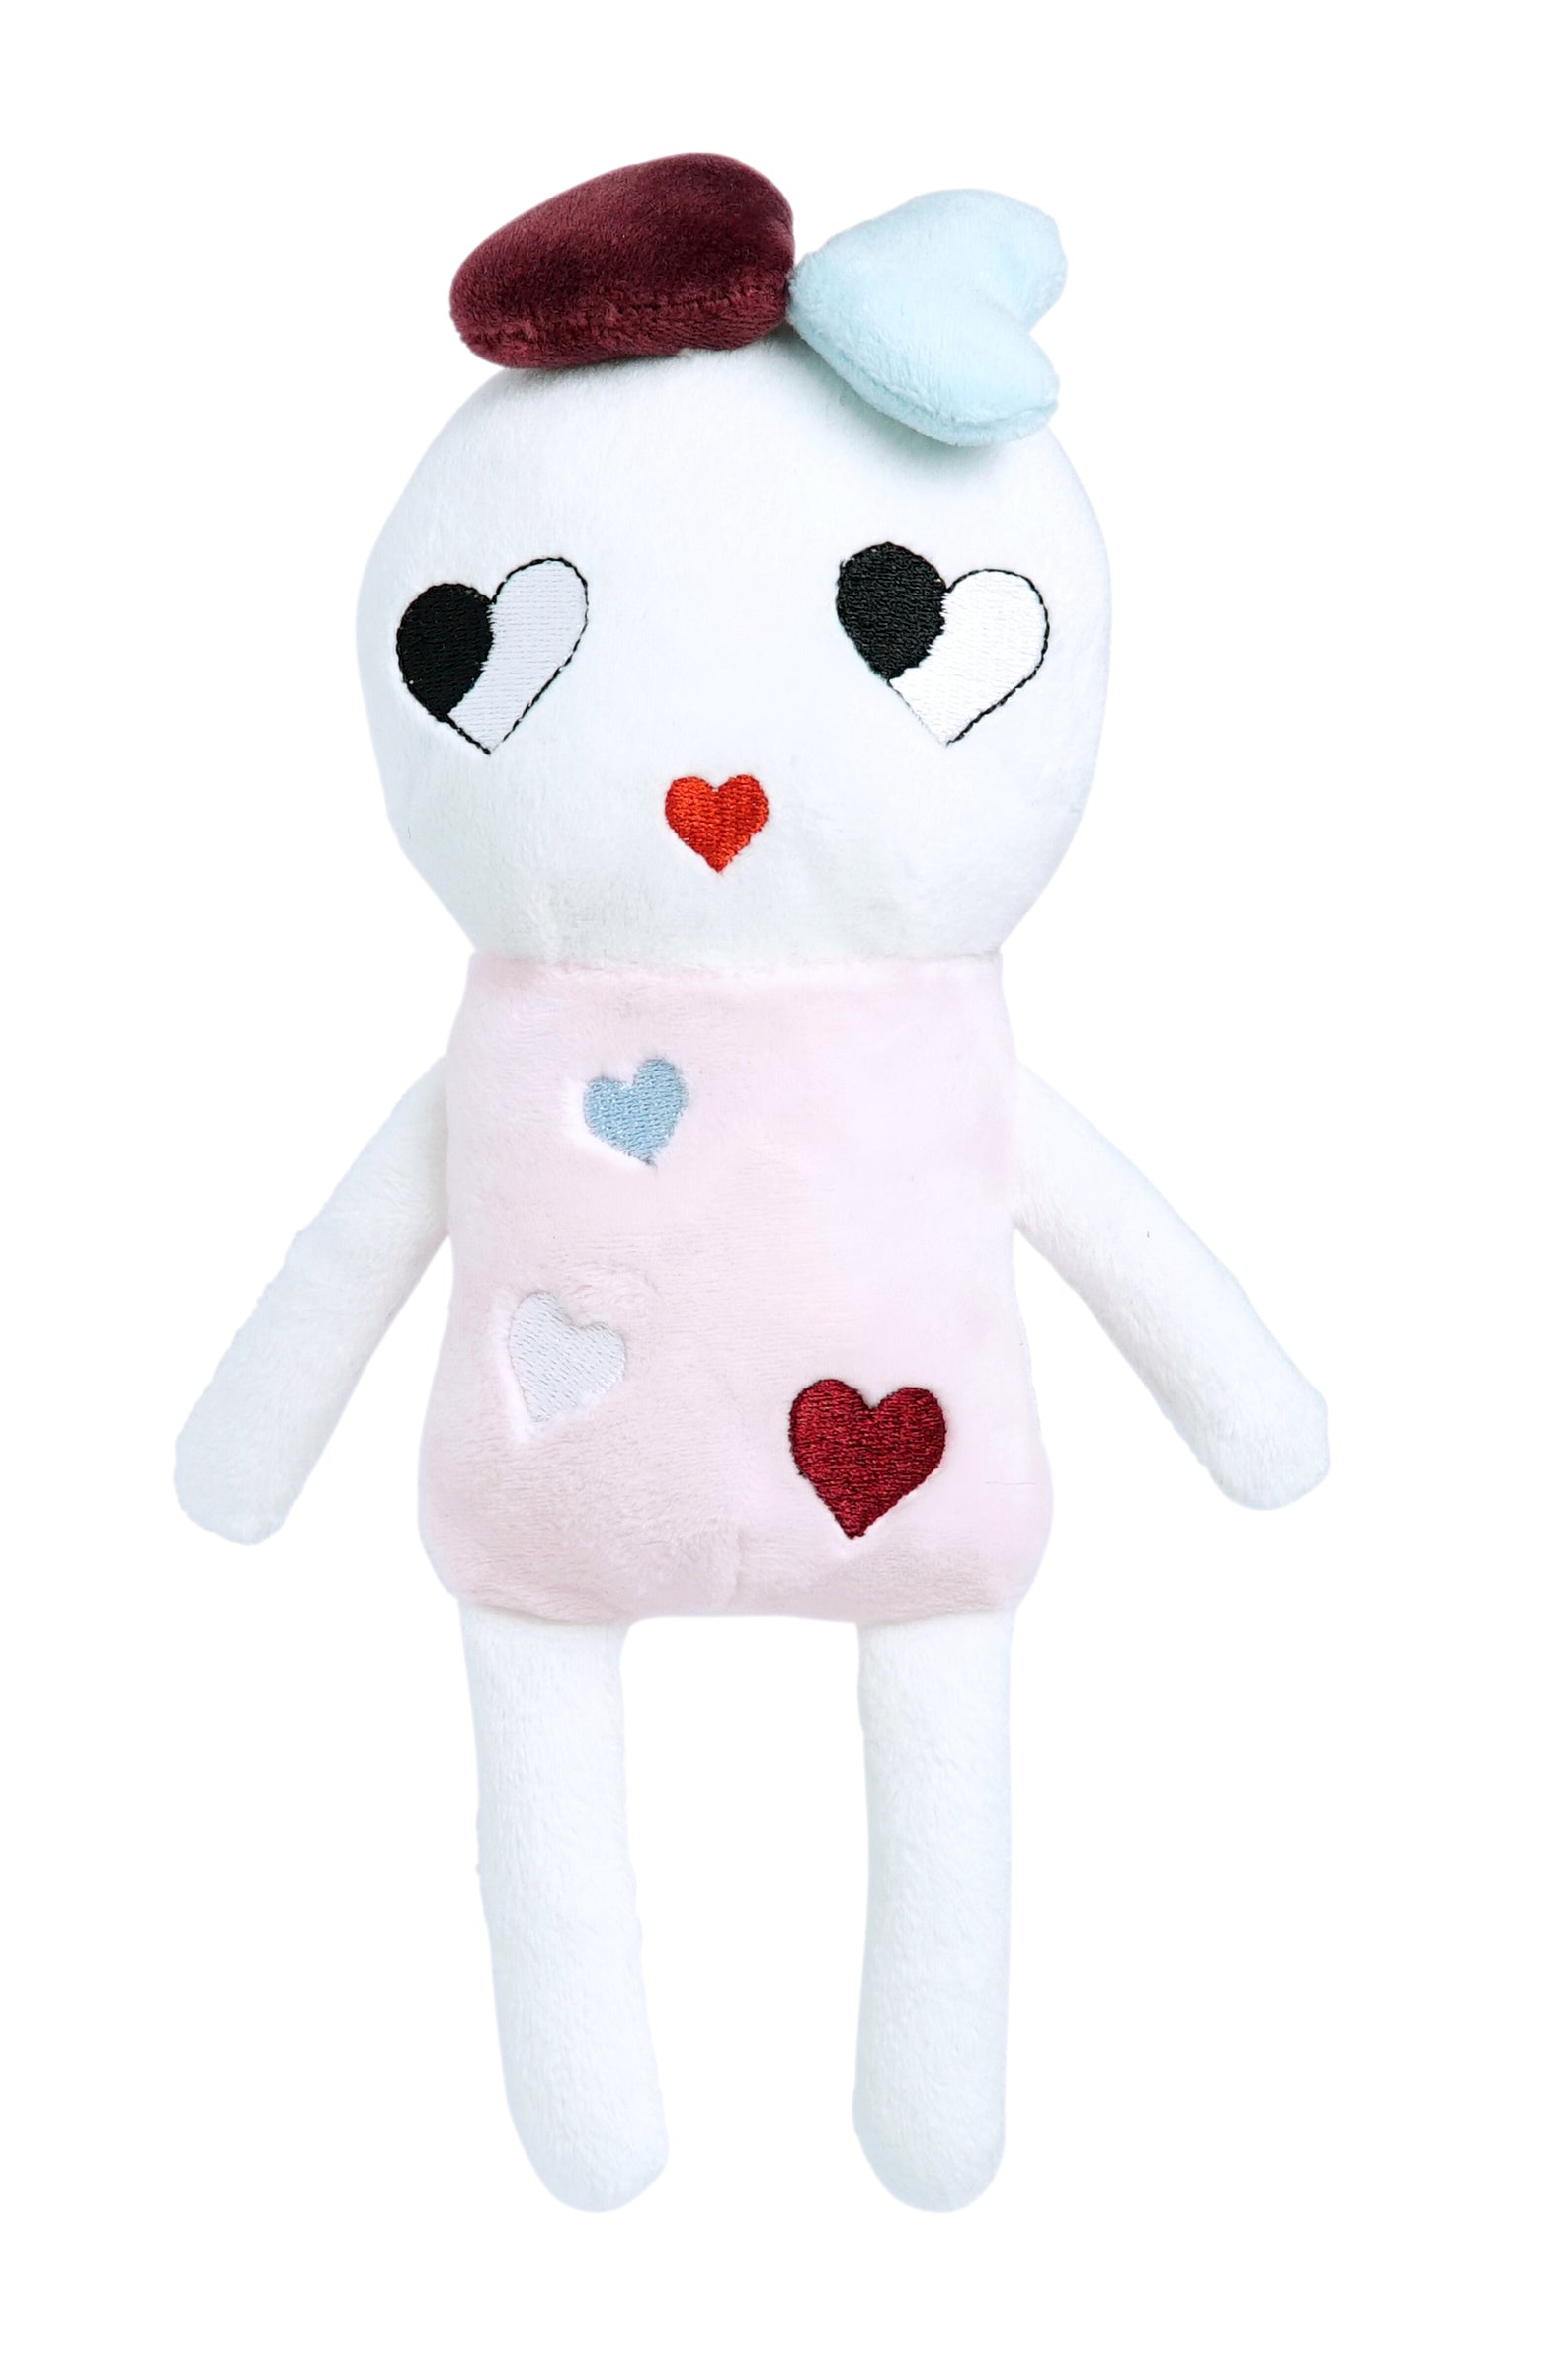 Luckyboysunday Baby Sweetheart Doll on DLK | designlifekids.com